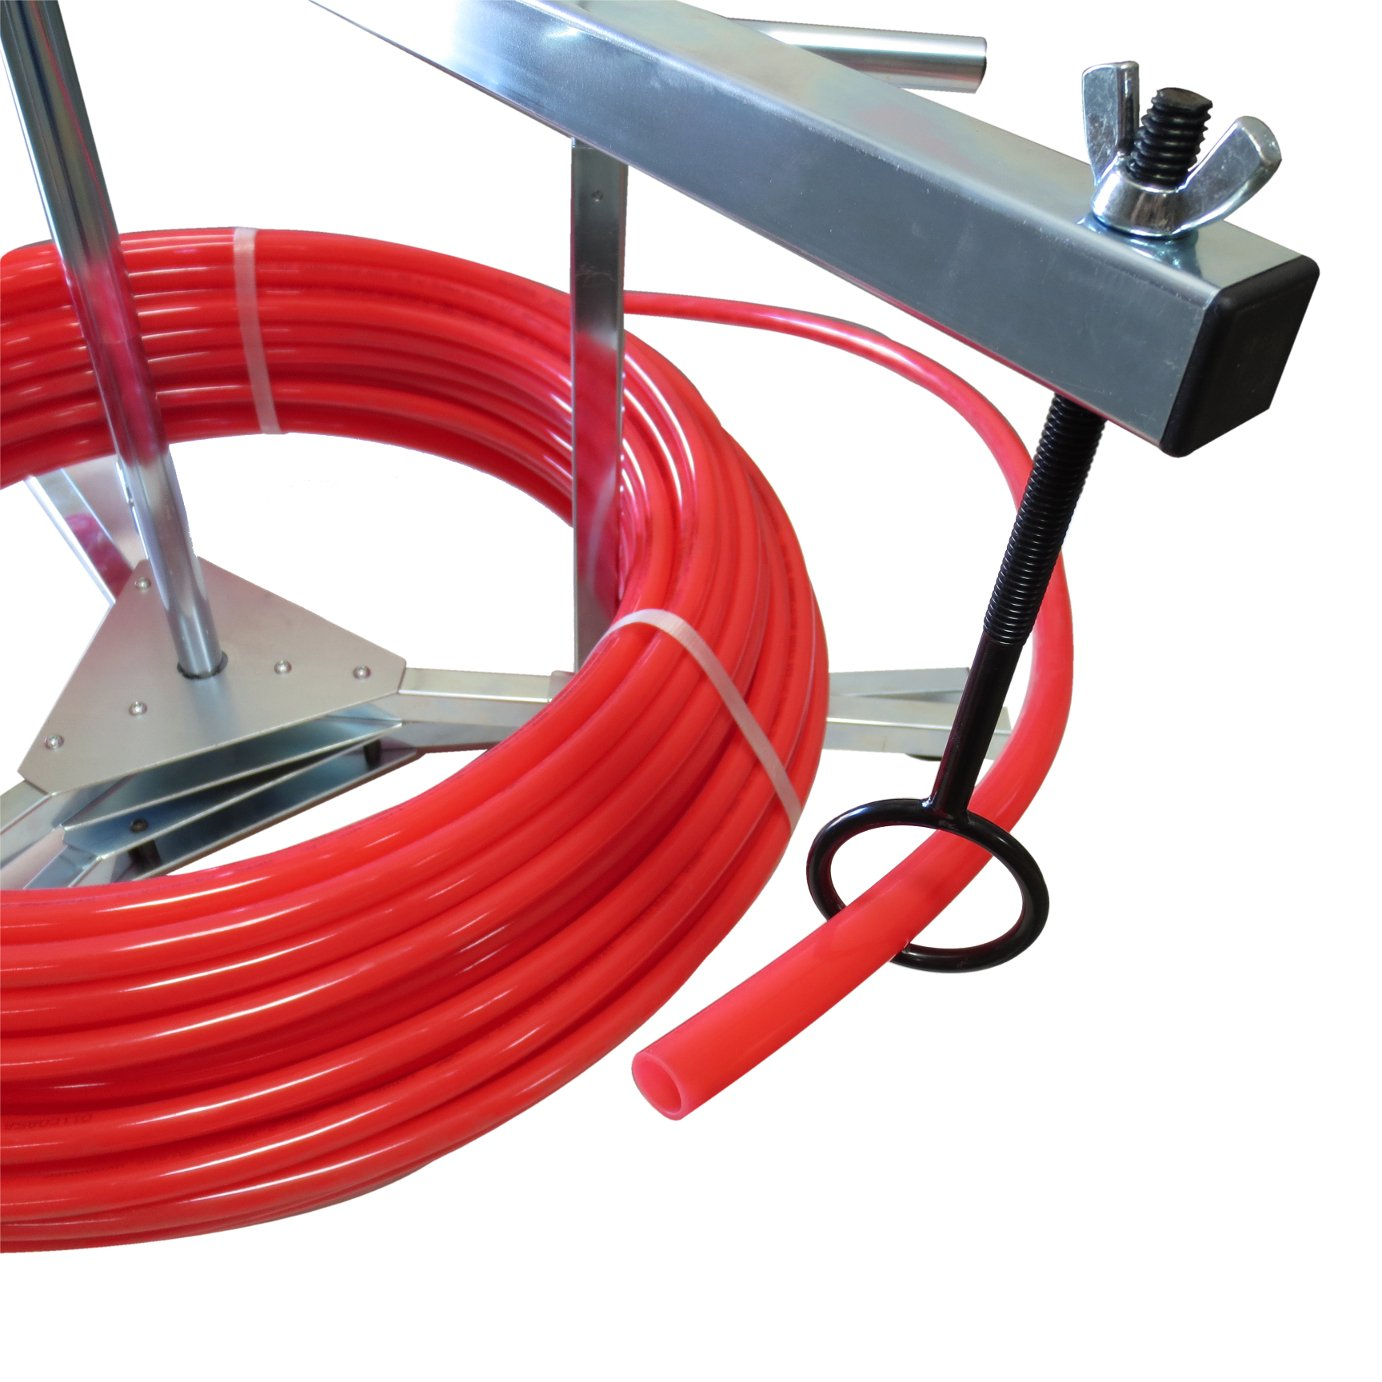 PEX GUY Piping Uncoiler for 3/8